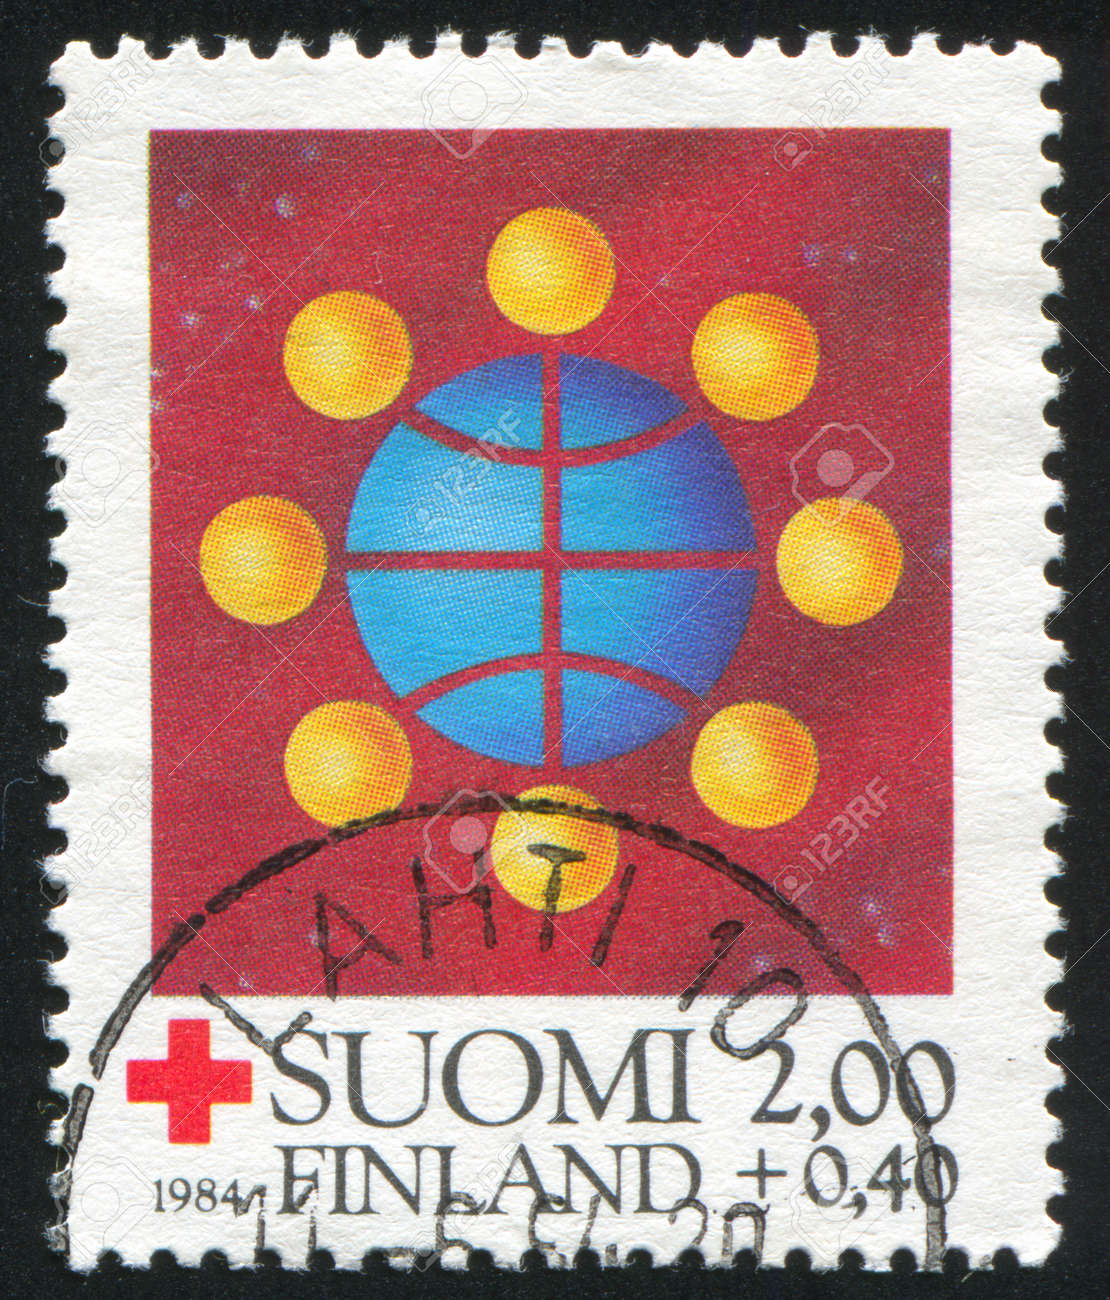 FINLAND - CIRCA 1984: stamp printed by Finland, shows Symbolic world communication, circa 1984 Stock Photo - 14564956